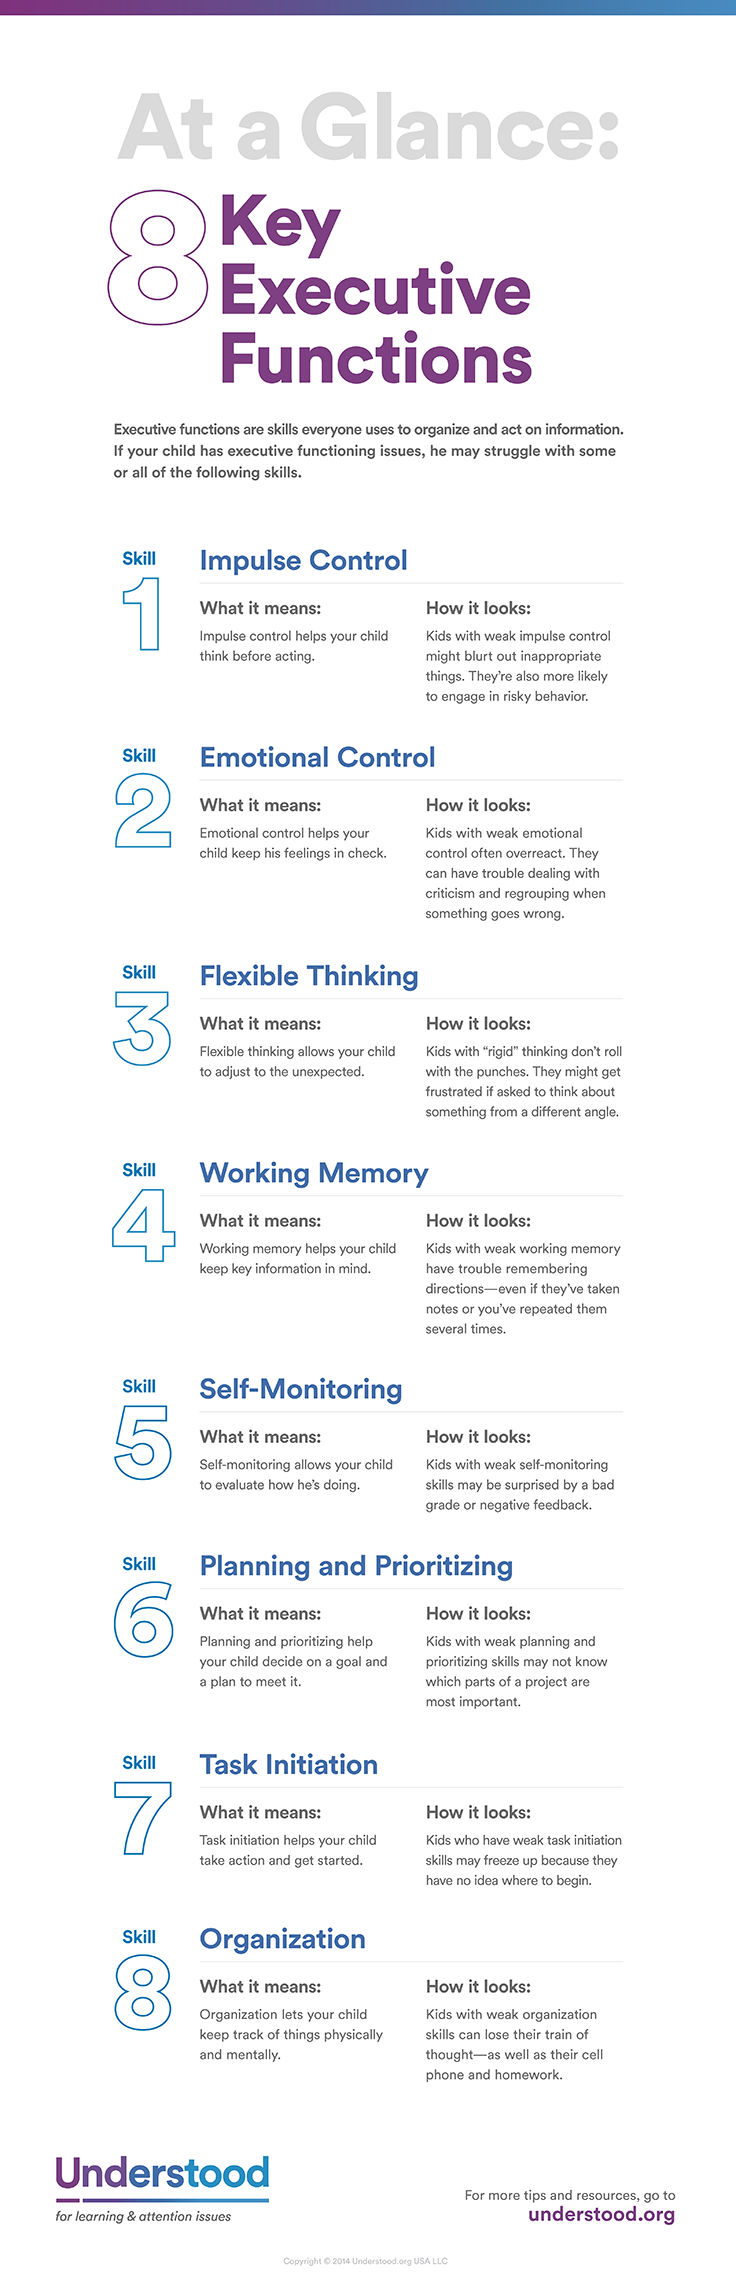 at a glance 8 key executive functions social skills closer and i found this page very interesting because you can use so many of different ideas based of the page such as motivation you can tell what is struggling